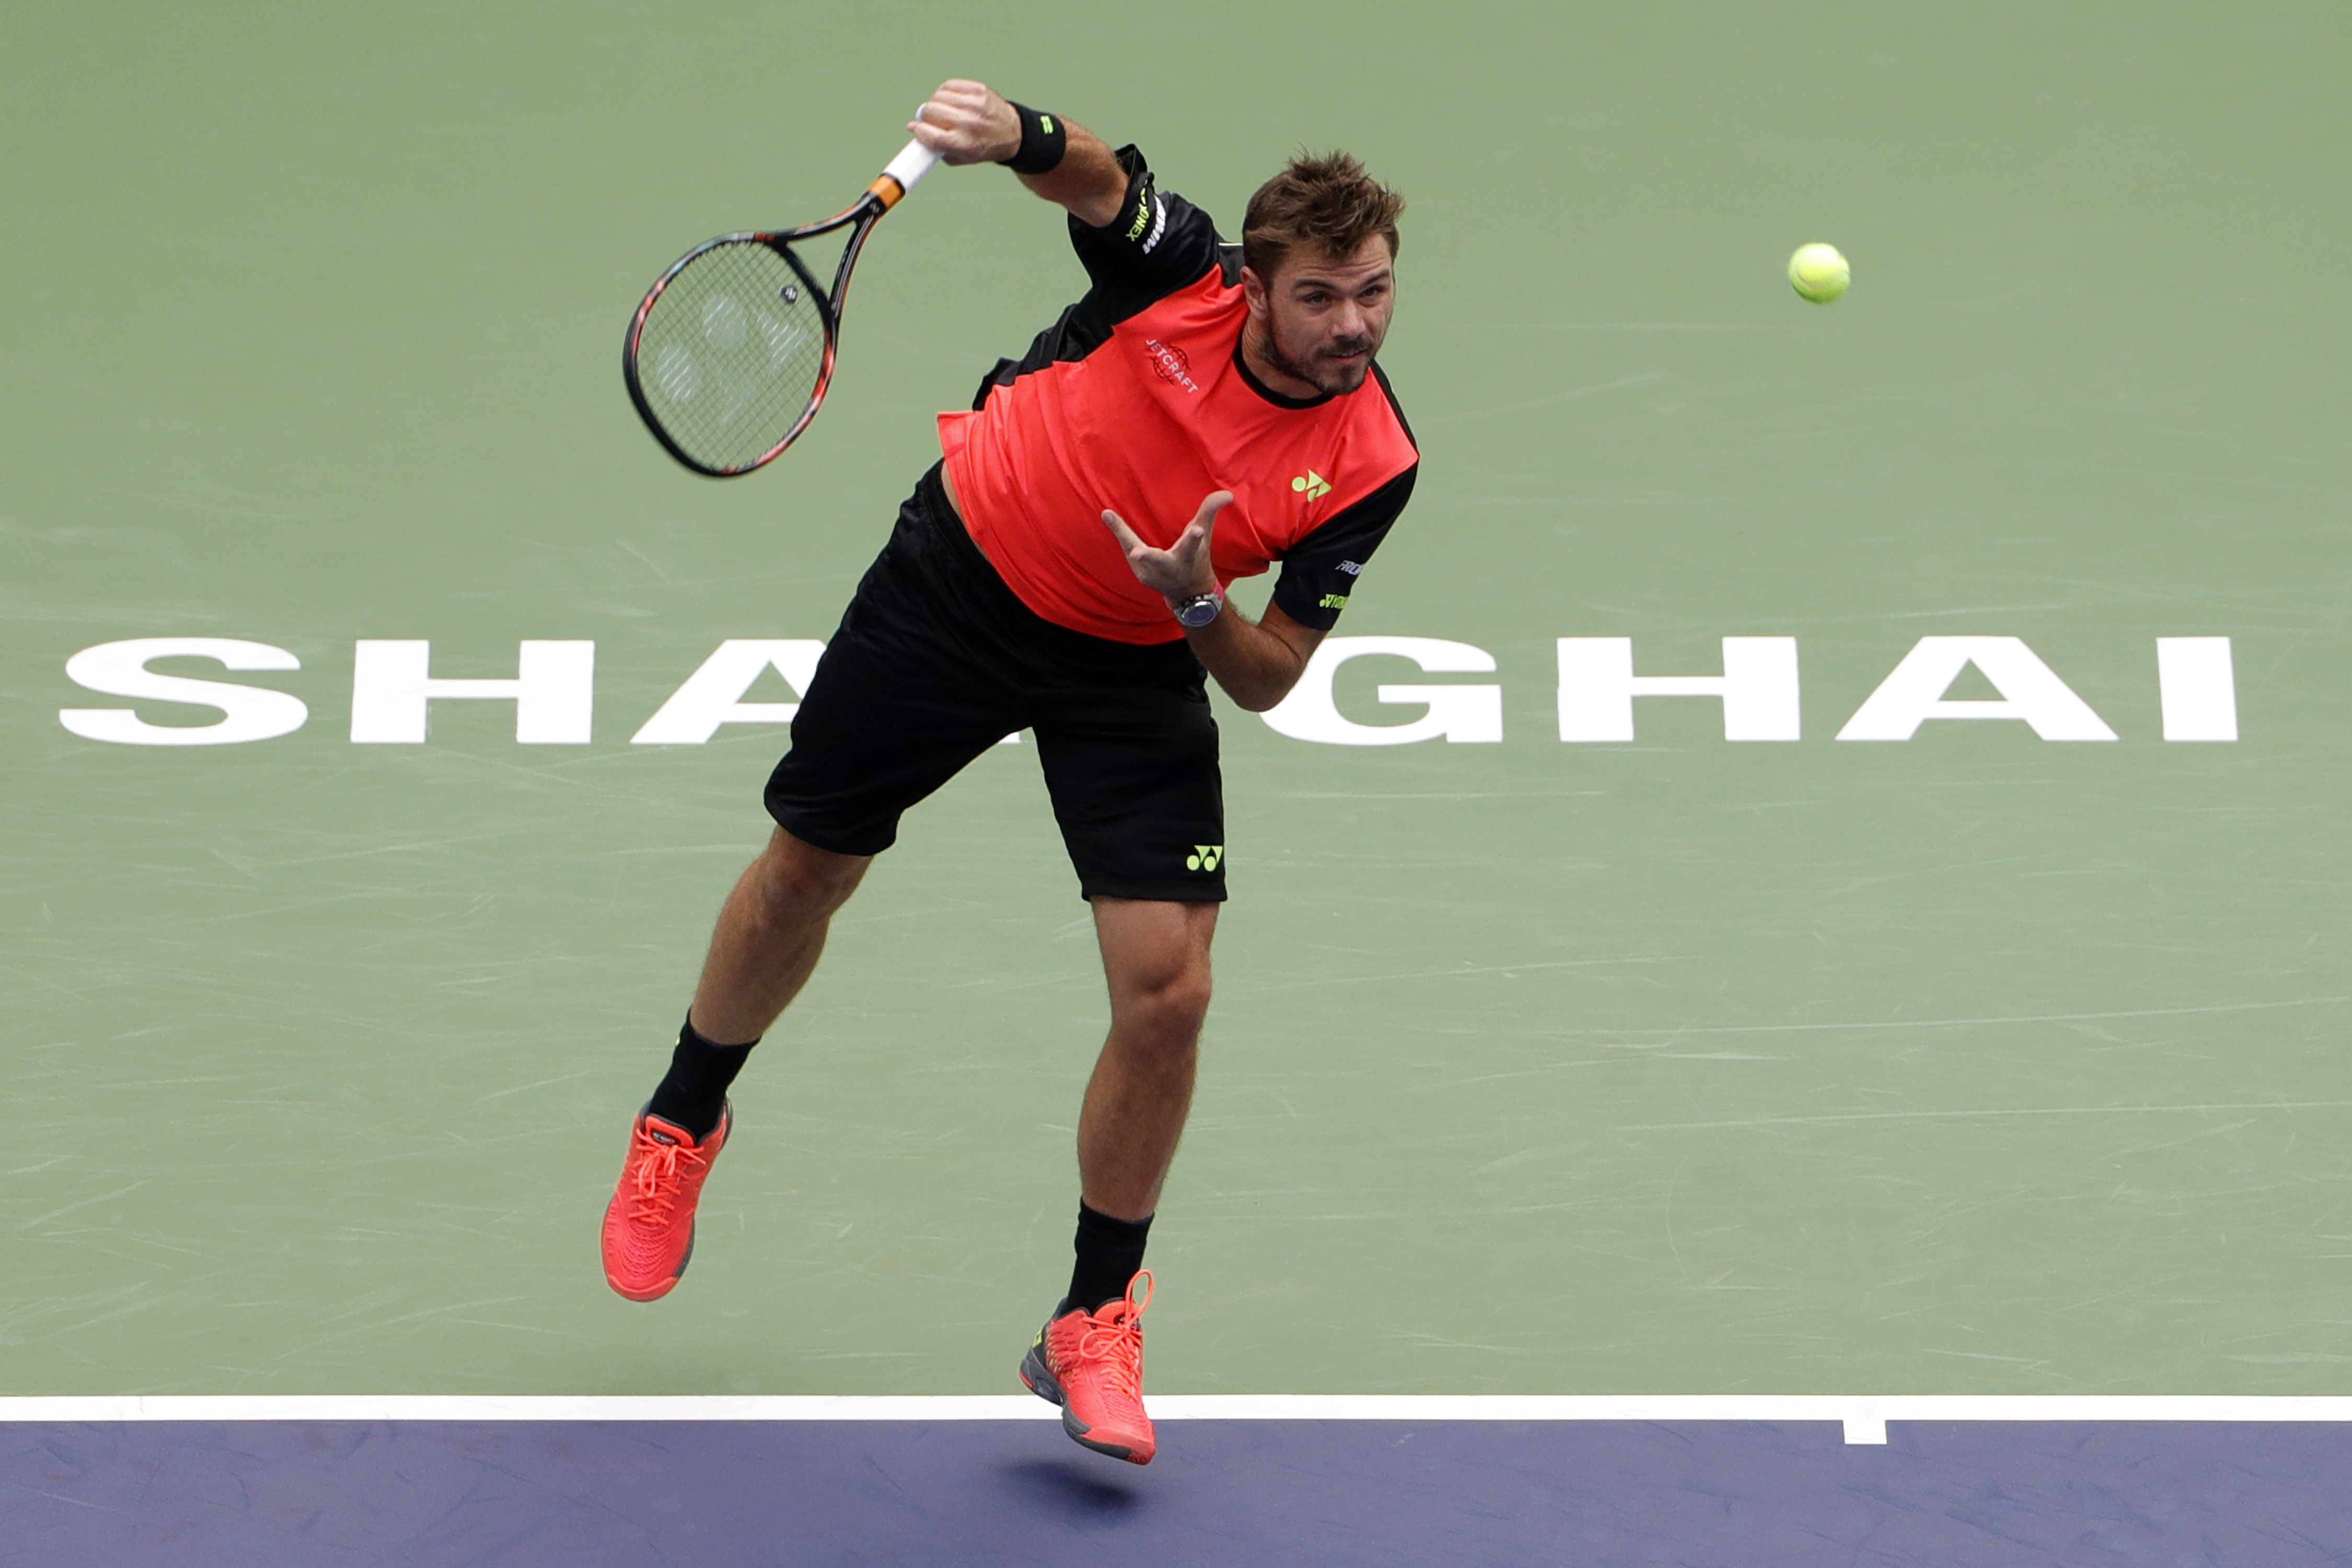 Stan Wawrinka of Switzerland serves against Kyle Edmund of Britain during the men's singles match of the Shanghai Masters tennis tournament at Qizhong Forest Sports City Tennis Center in Shanghai, China, Wednesday, Oct. 12, 2016. (AP Photo/Andy Wong)